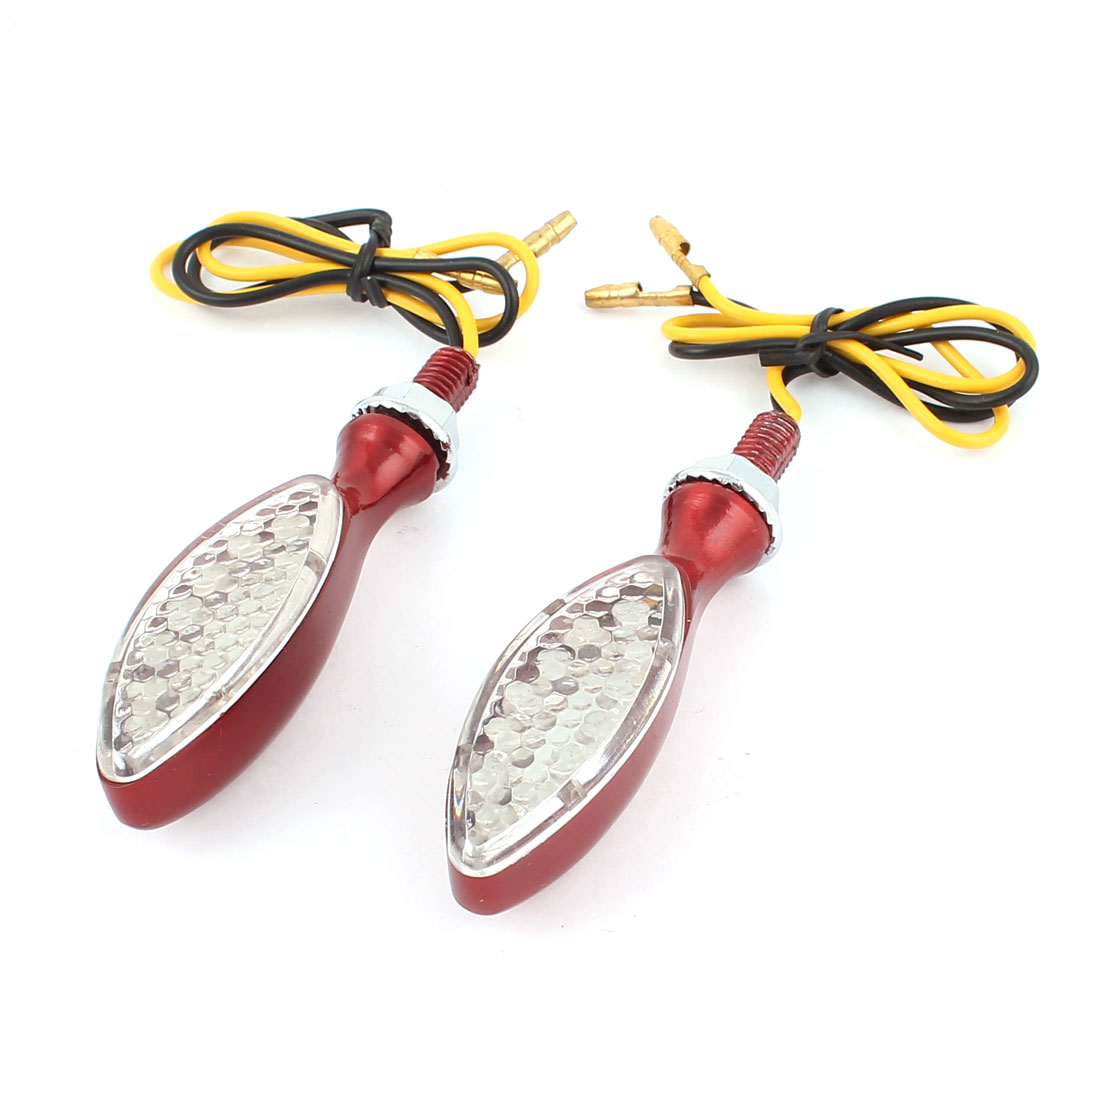 Unique BargainsRed Shield Shape Yellow  Motorcycle Turn Signal Warning Lights Lamps 2 Pcs